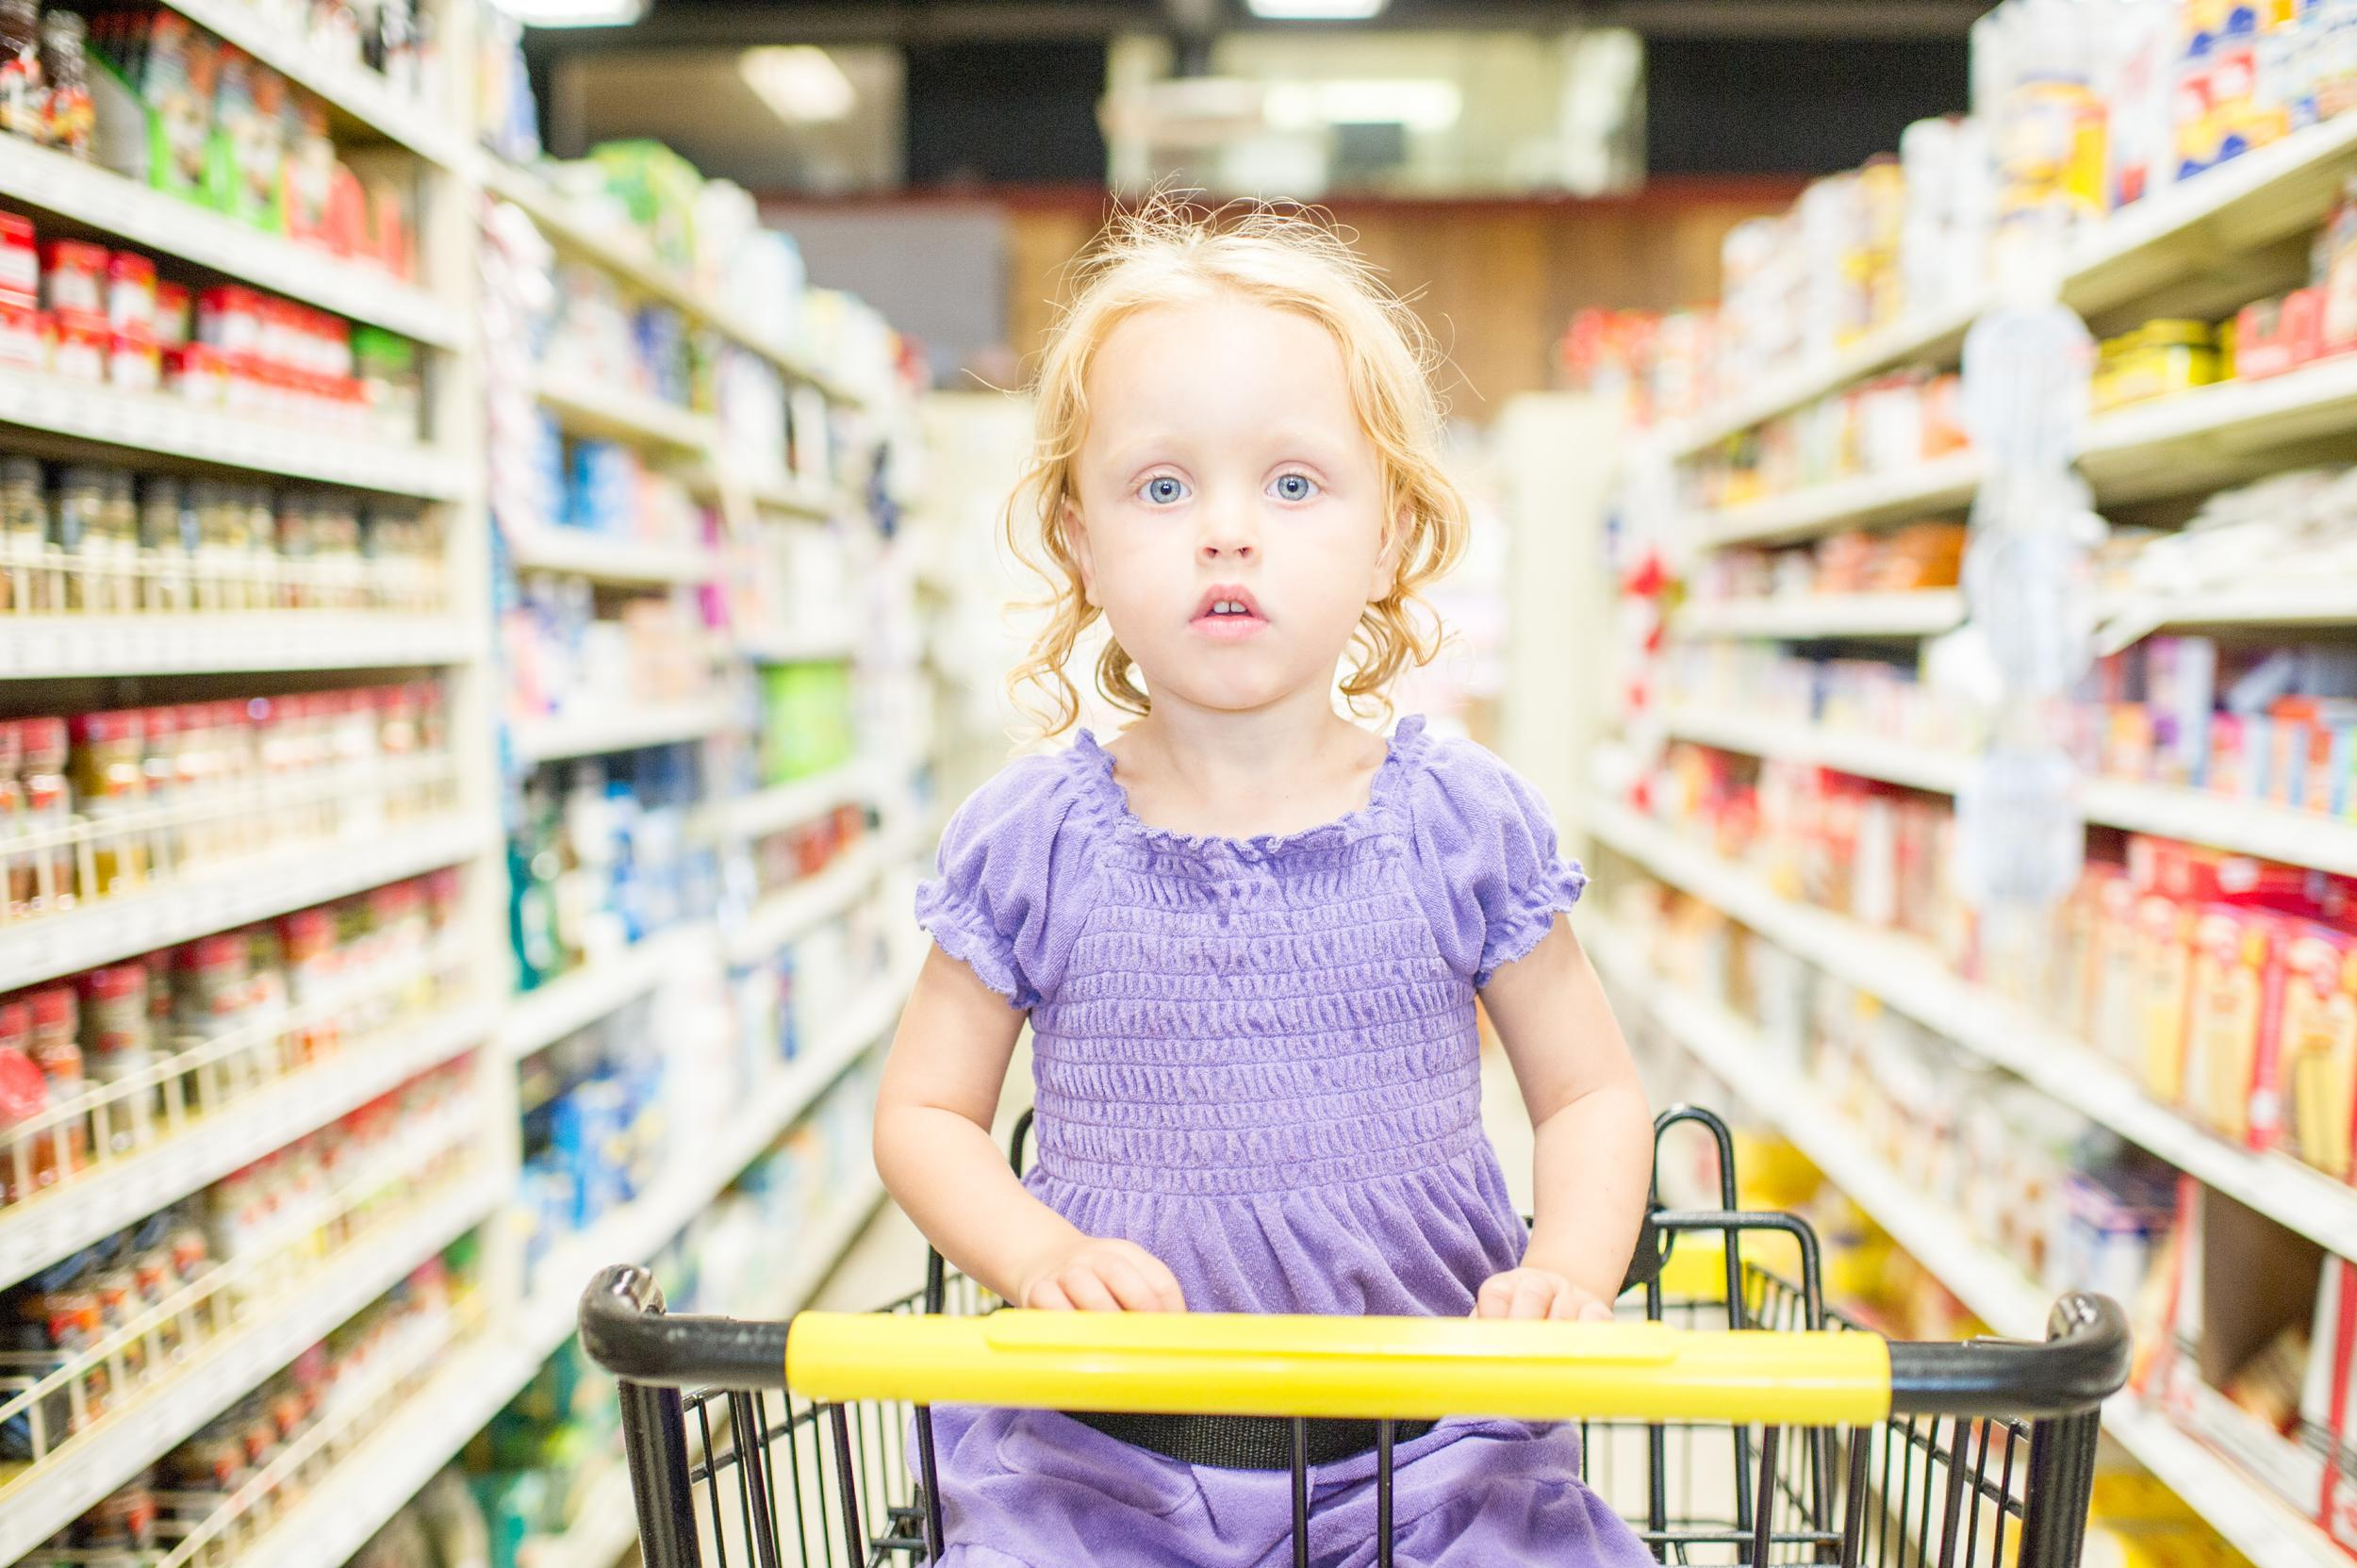 <p>If you browse at eye-level using your peripheral vision, that's where you'll find the expensive brands.</p>  <p>Look around at the top and bottom of the shelves for the own-brand versions or the cheaper brands - and try out the cheaper versions of your usual shopping.</p>